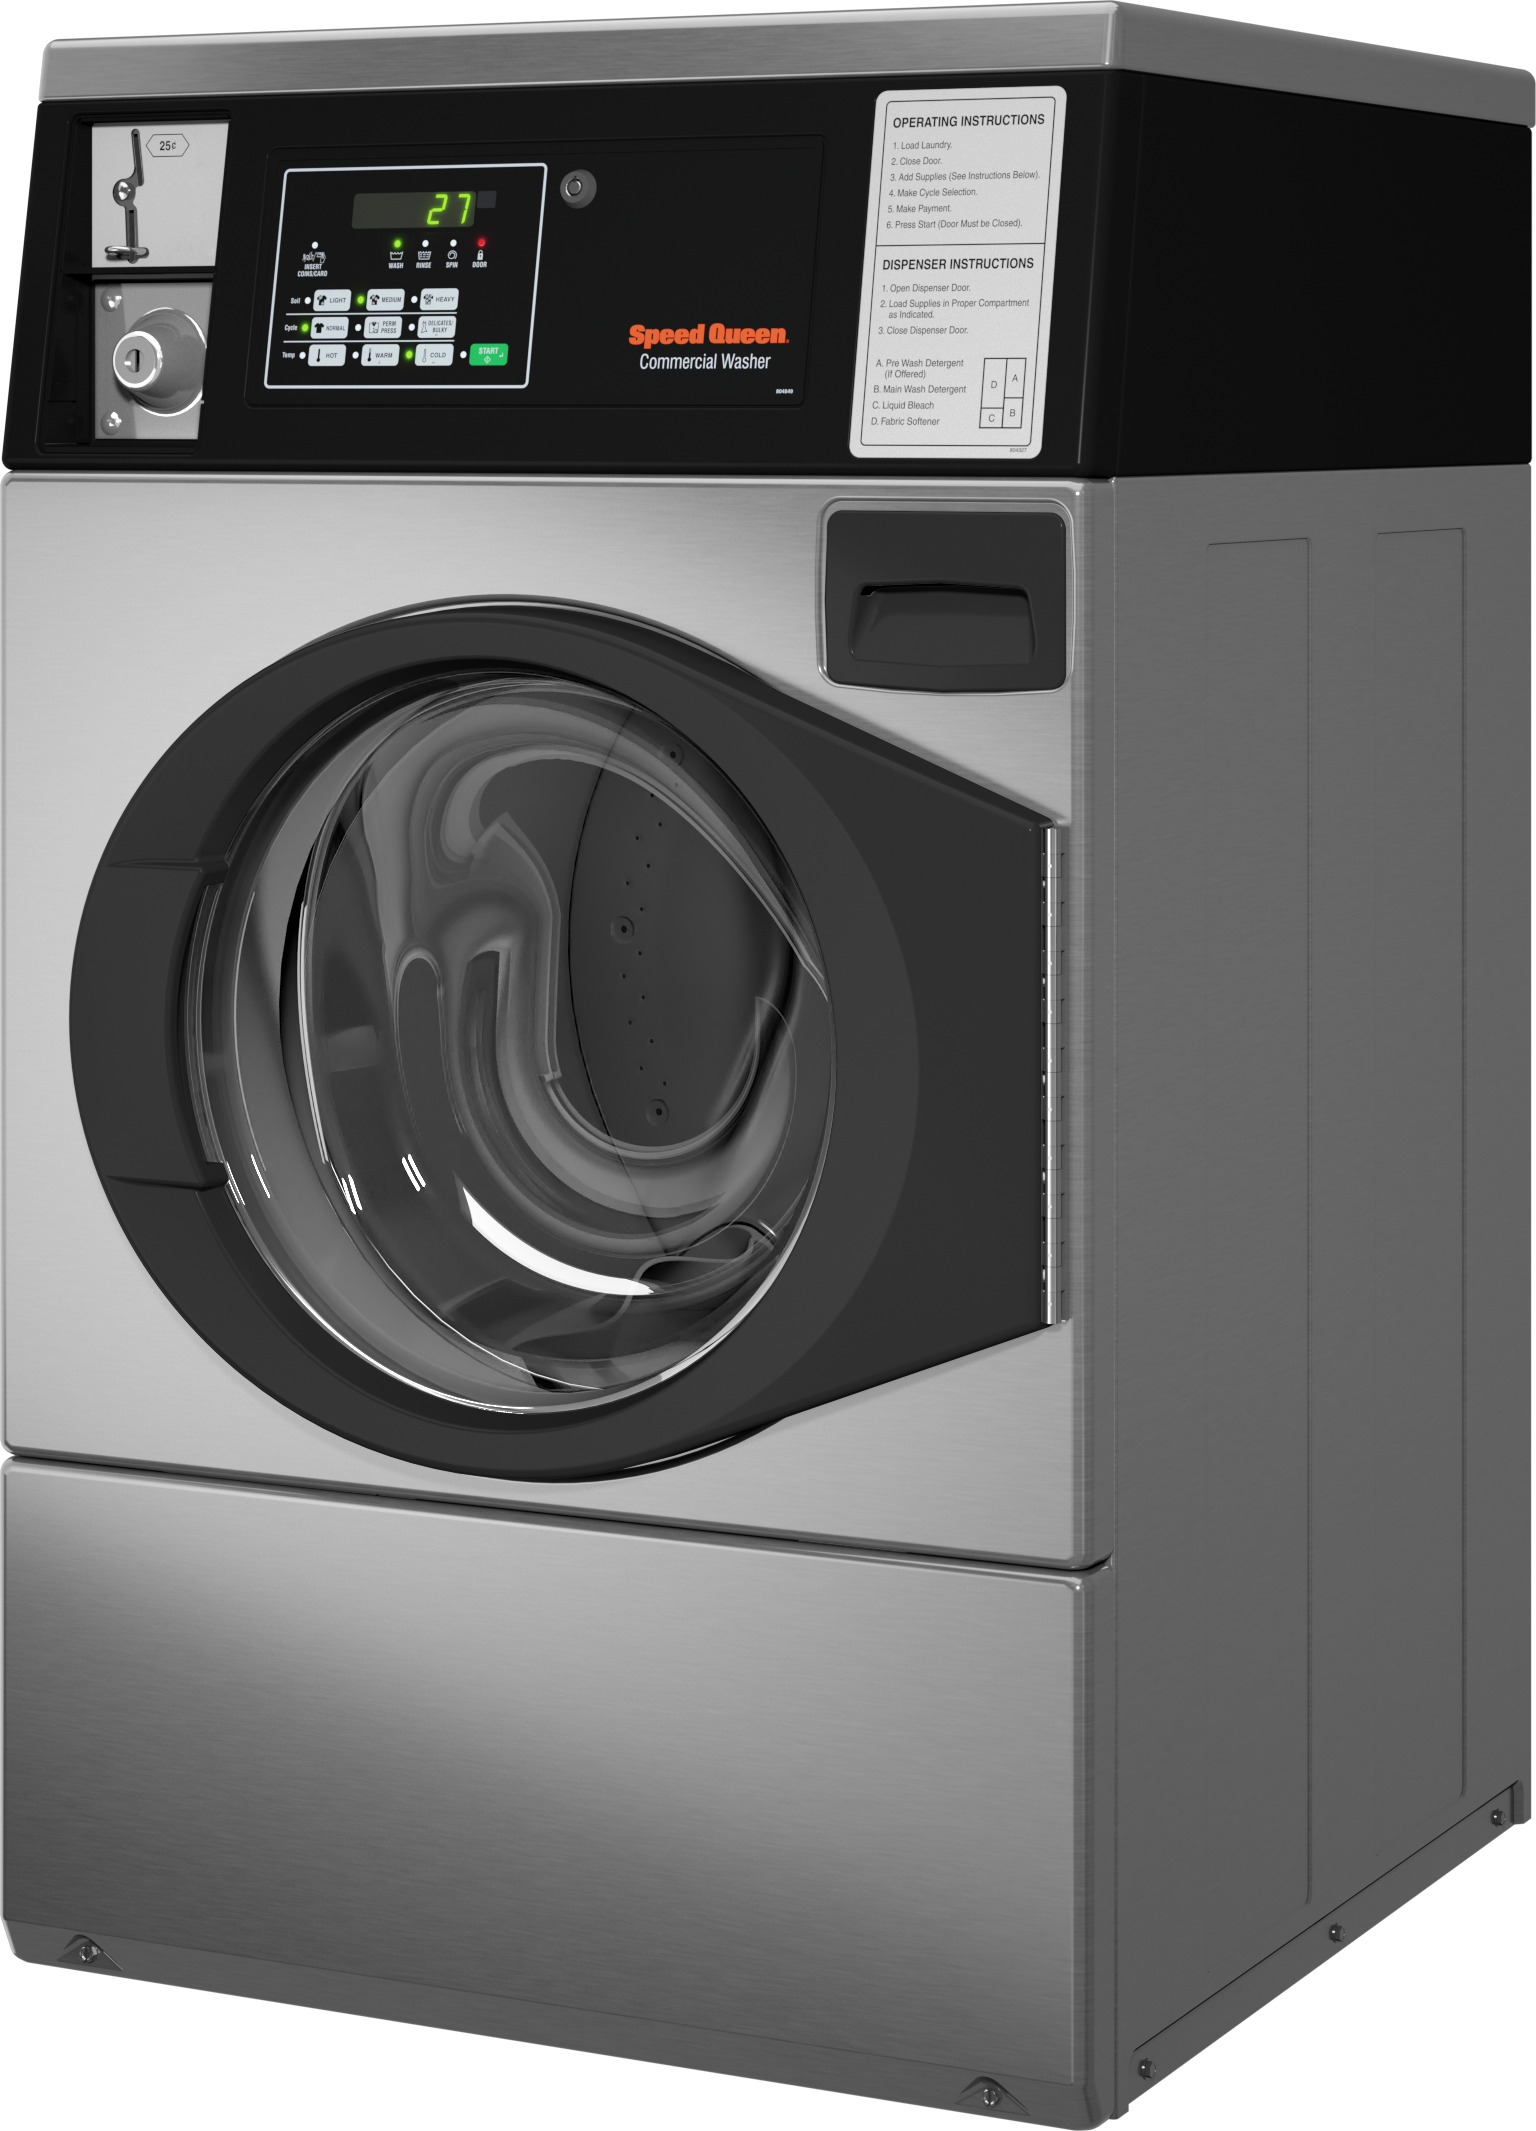 Pin By Veryblessed On Clothes Washer Dryer Commercial Washers Washer And Dryer Clothes Washer